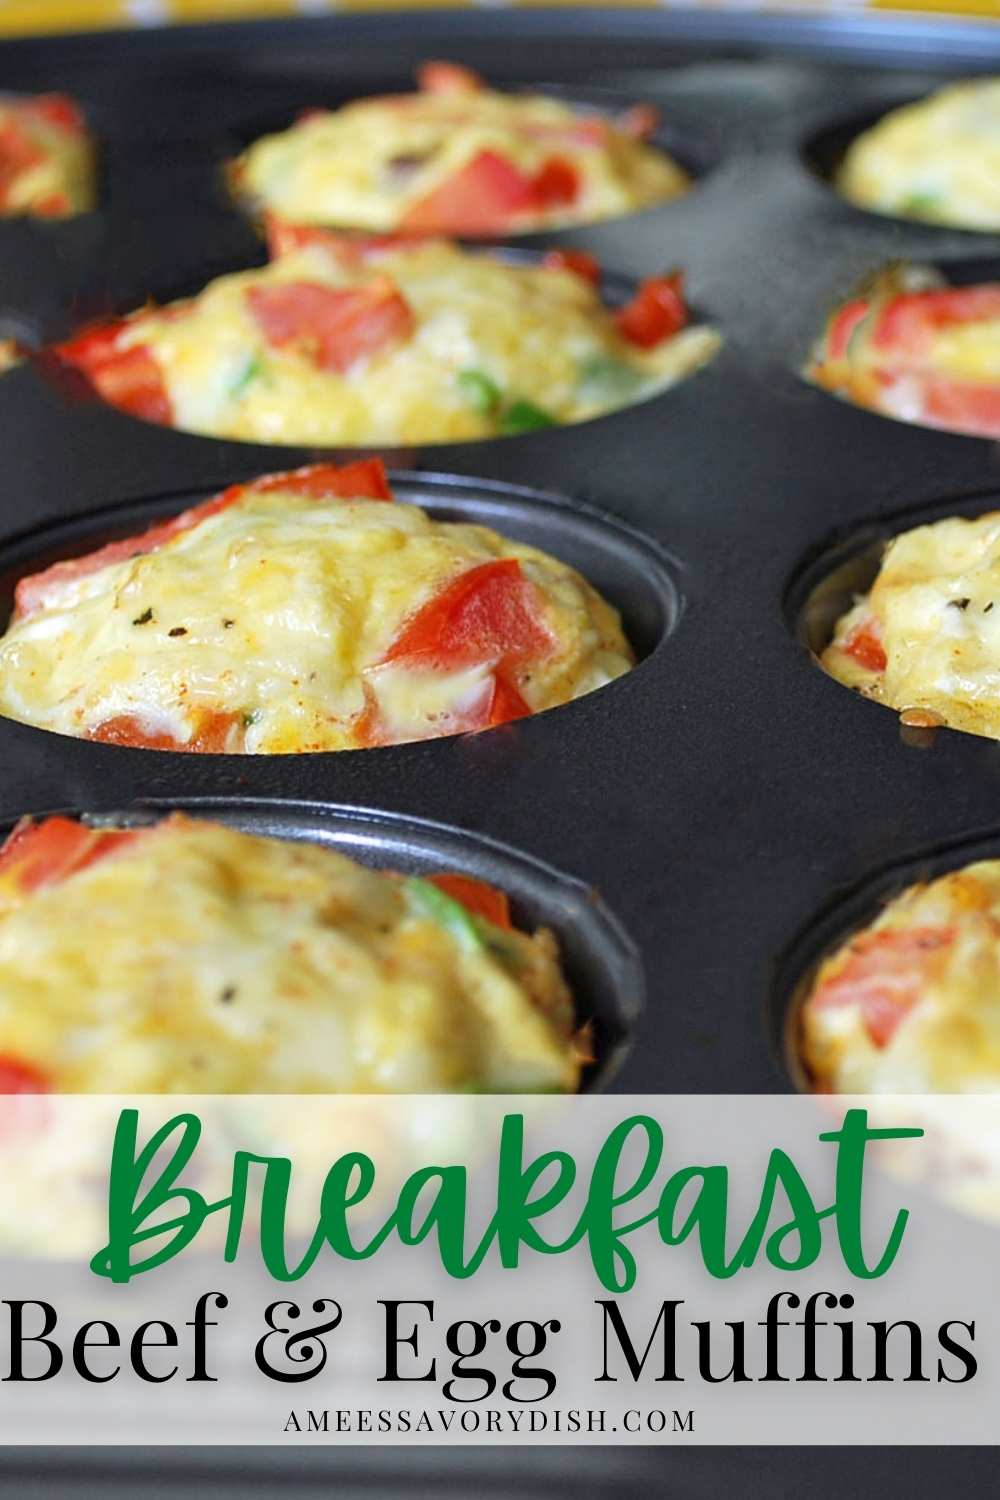 #Sponsored A healthy, protein-packed, recipe for Beef Egg Muffins with a southwestern flair using lean ground beef, eggs, cheese, and spices. #eggmuffins #beefeggmuffins #southwesteggmuffins #easyeggmuffins #mealprepbreakfast via @Ameessavorydish